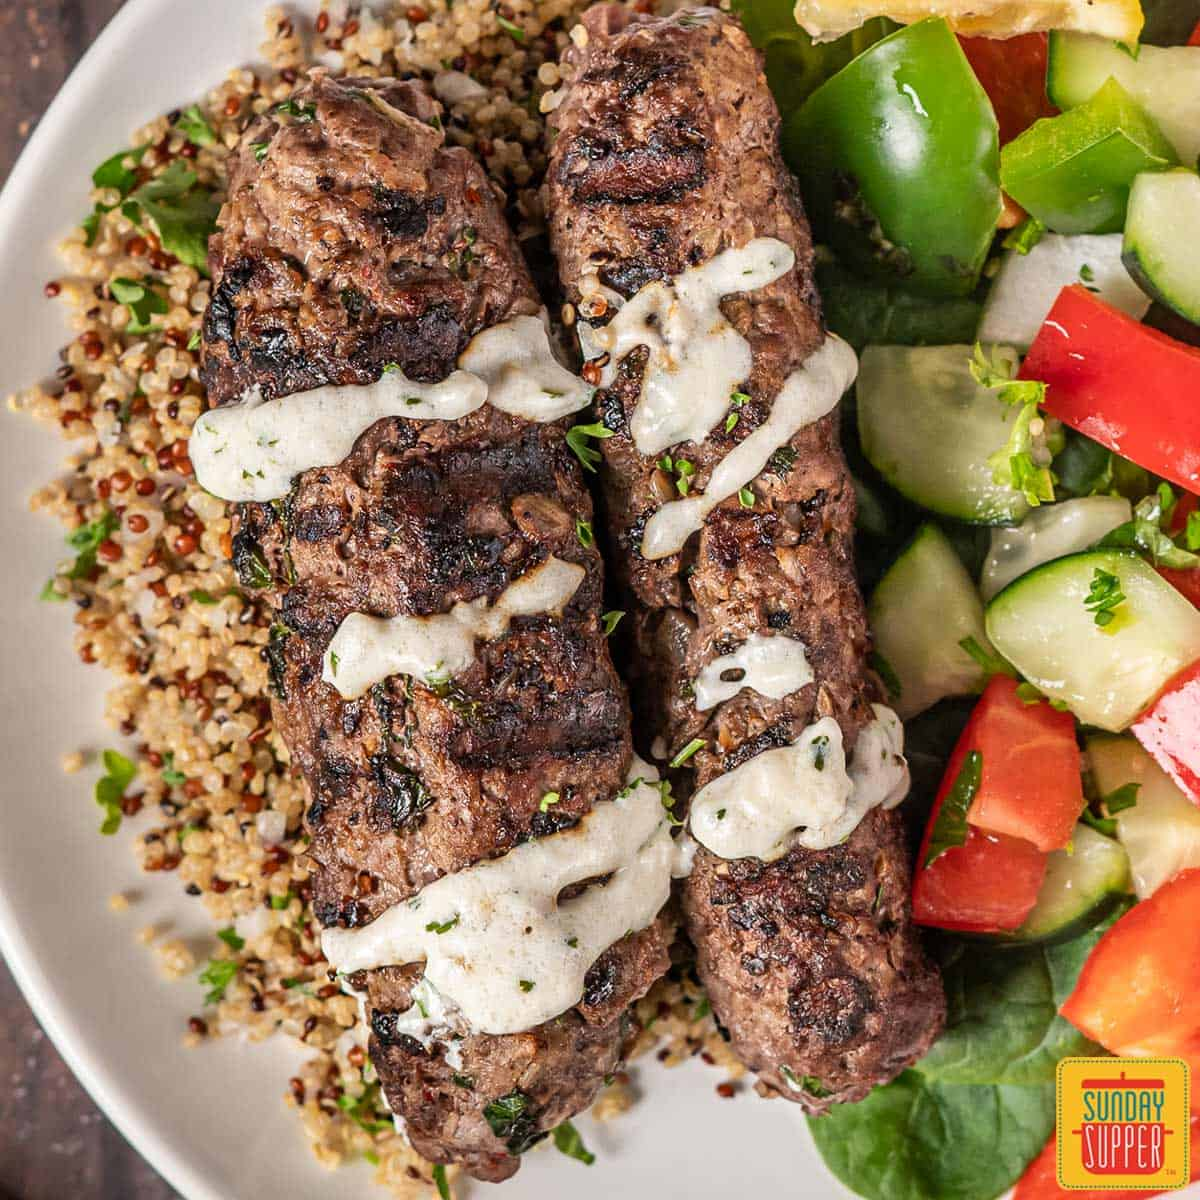 Beef kofta on a plate with cream sauce, couscous and a cucumber salad